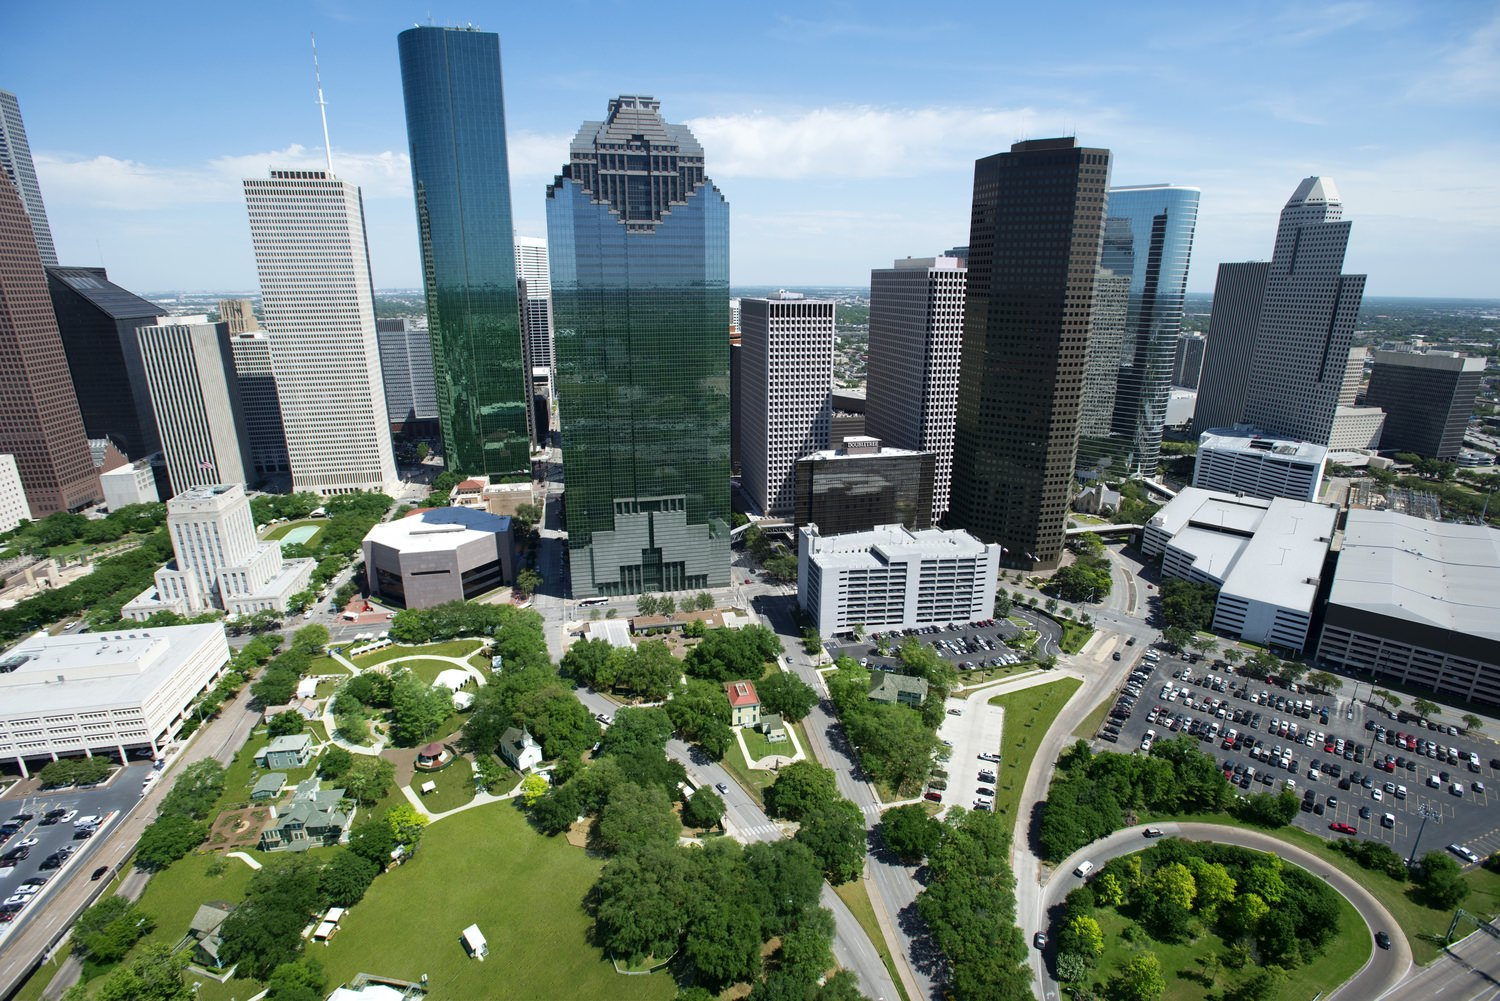 A view of a park that has trees and grass that is located in the middle of a city that has tall buildings in it.